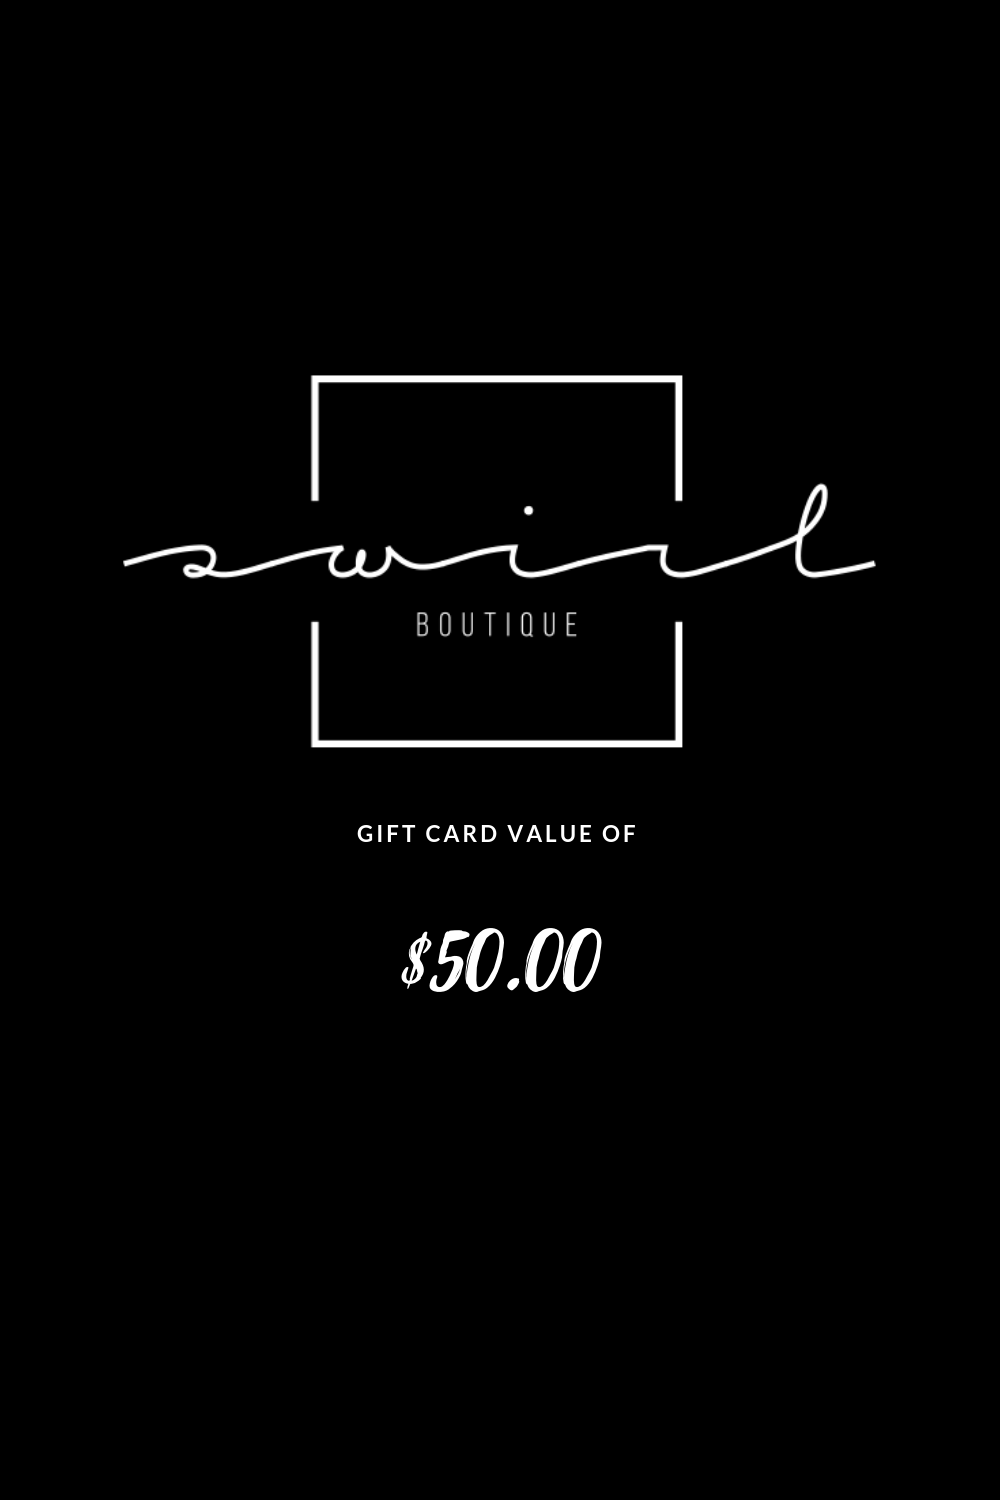 SWIRL BOUTIQUE GIFT CARD - $50